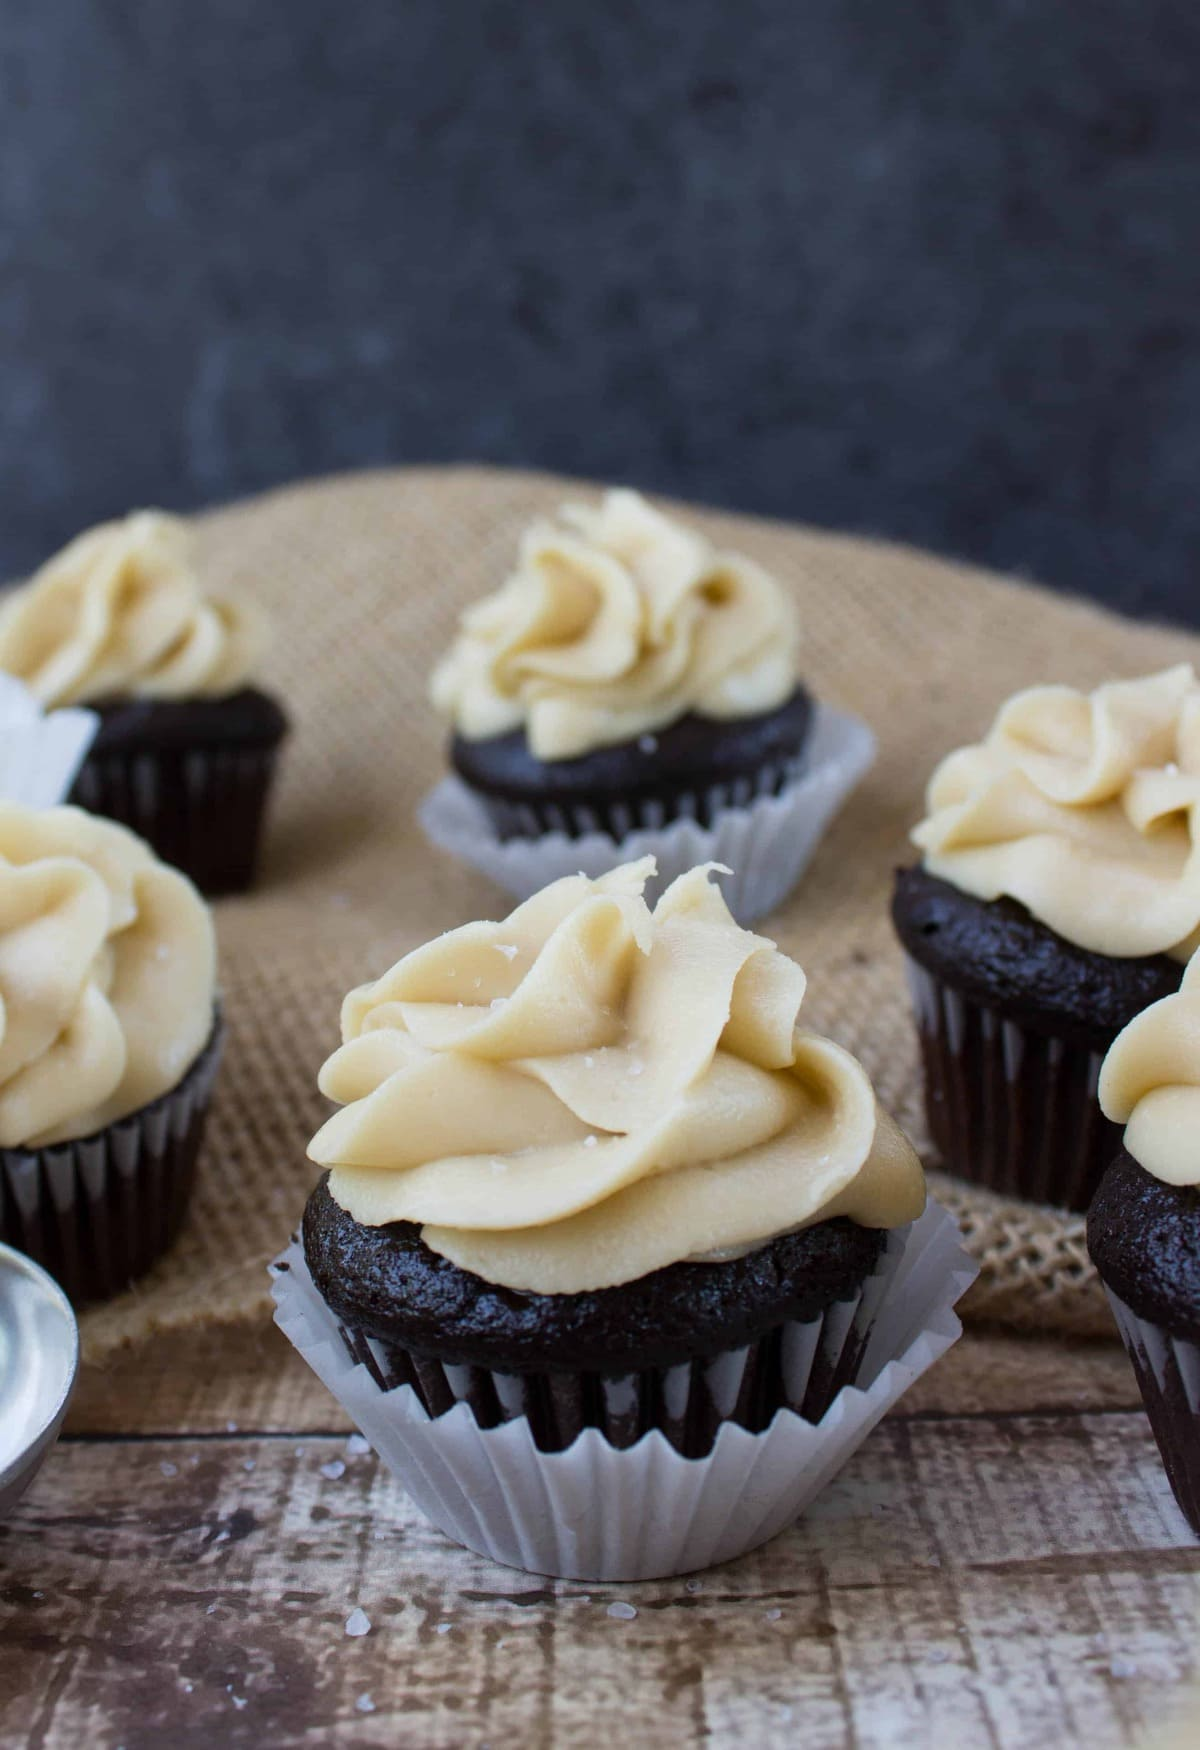 Salted Caramel And Chocolate Mini Cakes